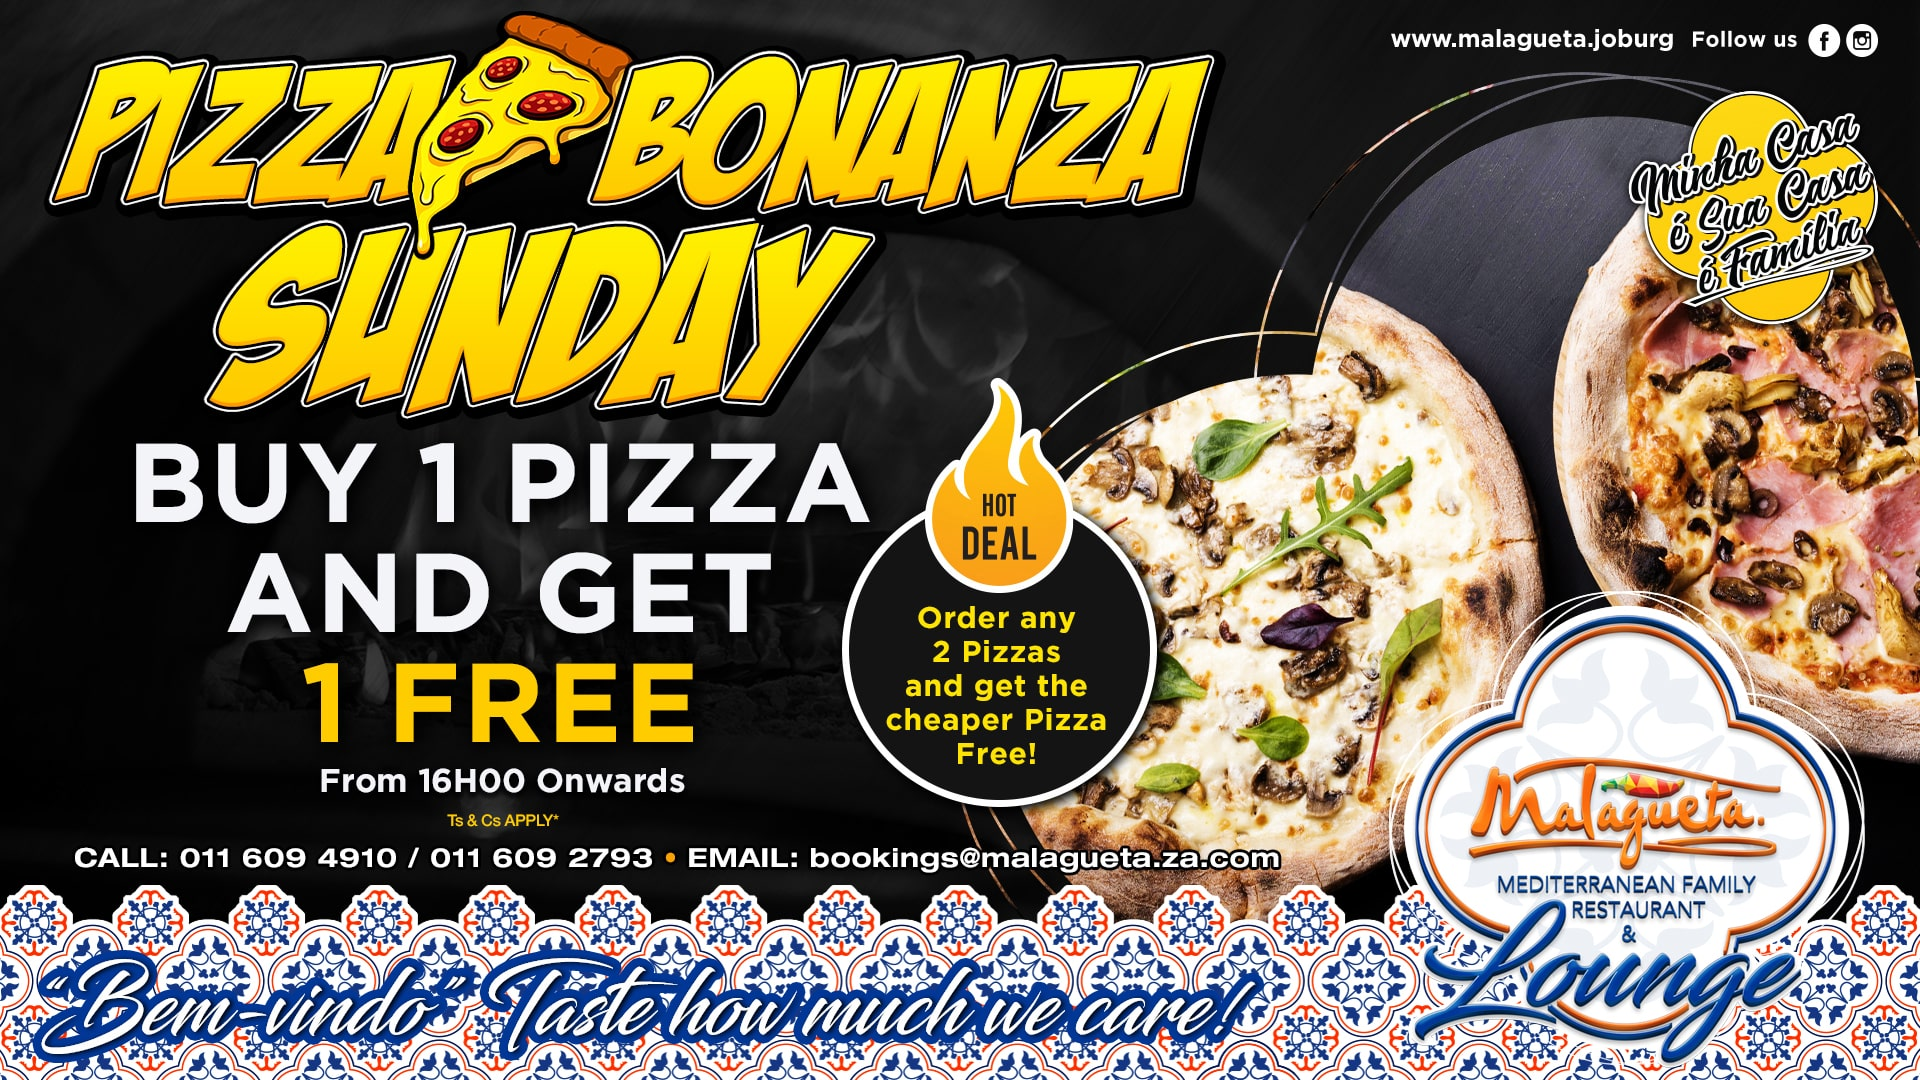 Sunday-Pizza-Bonanza-2021-HD-min-1